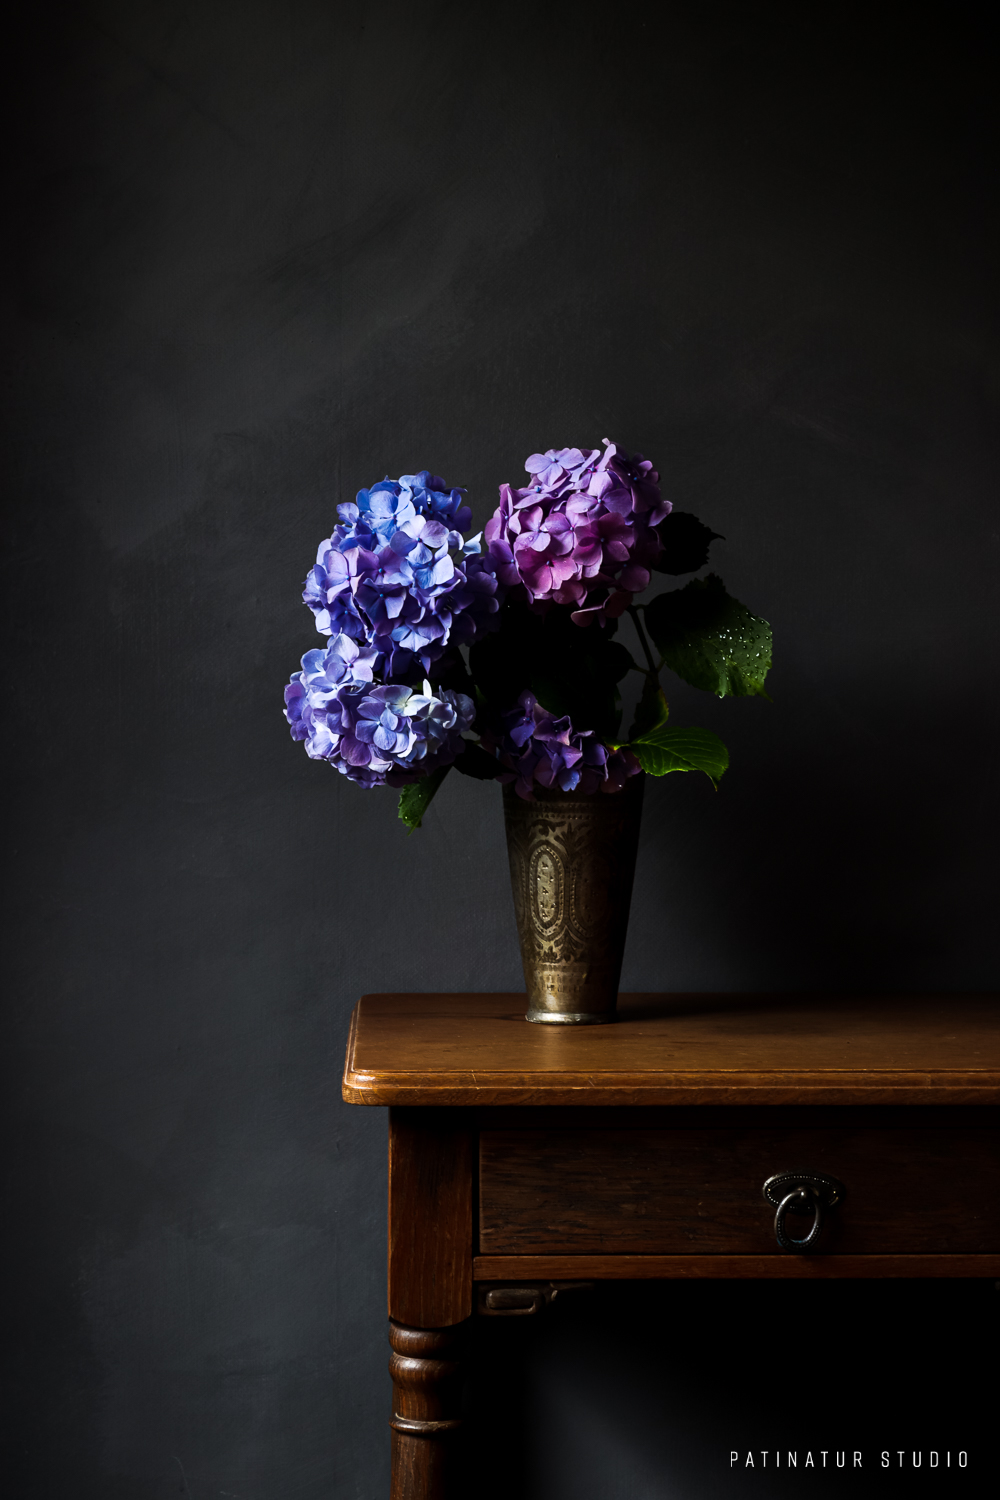 Photo art | Dark and moody still life with blue and pink hydrangeas in Indian lassi cup on wooden vintage side table